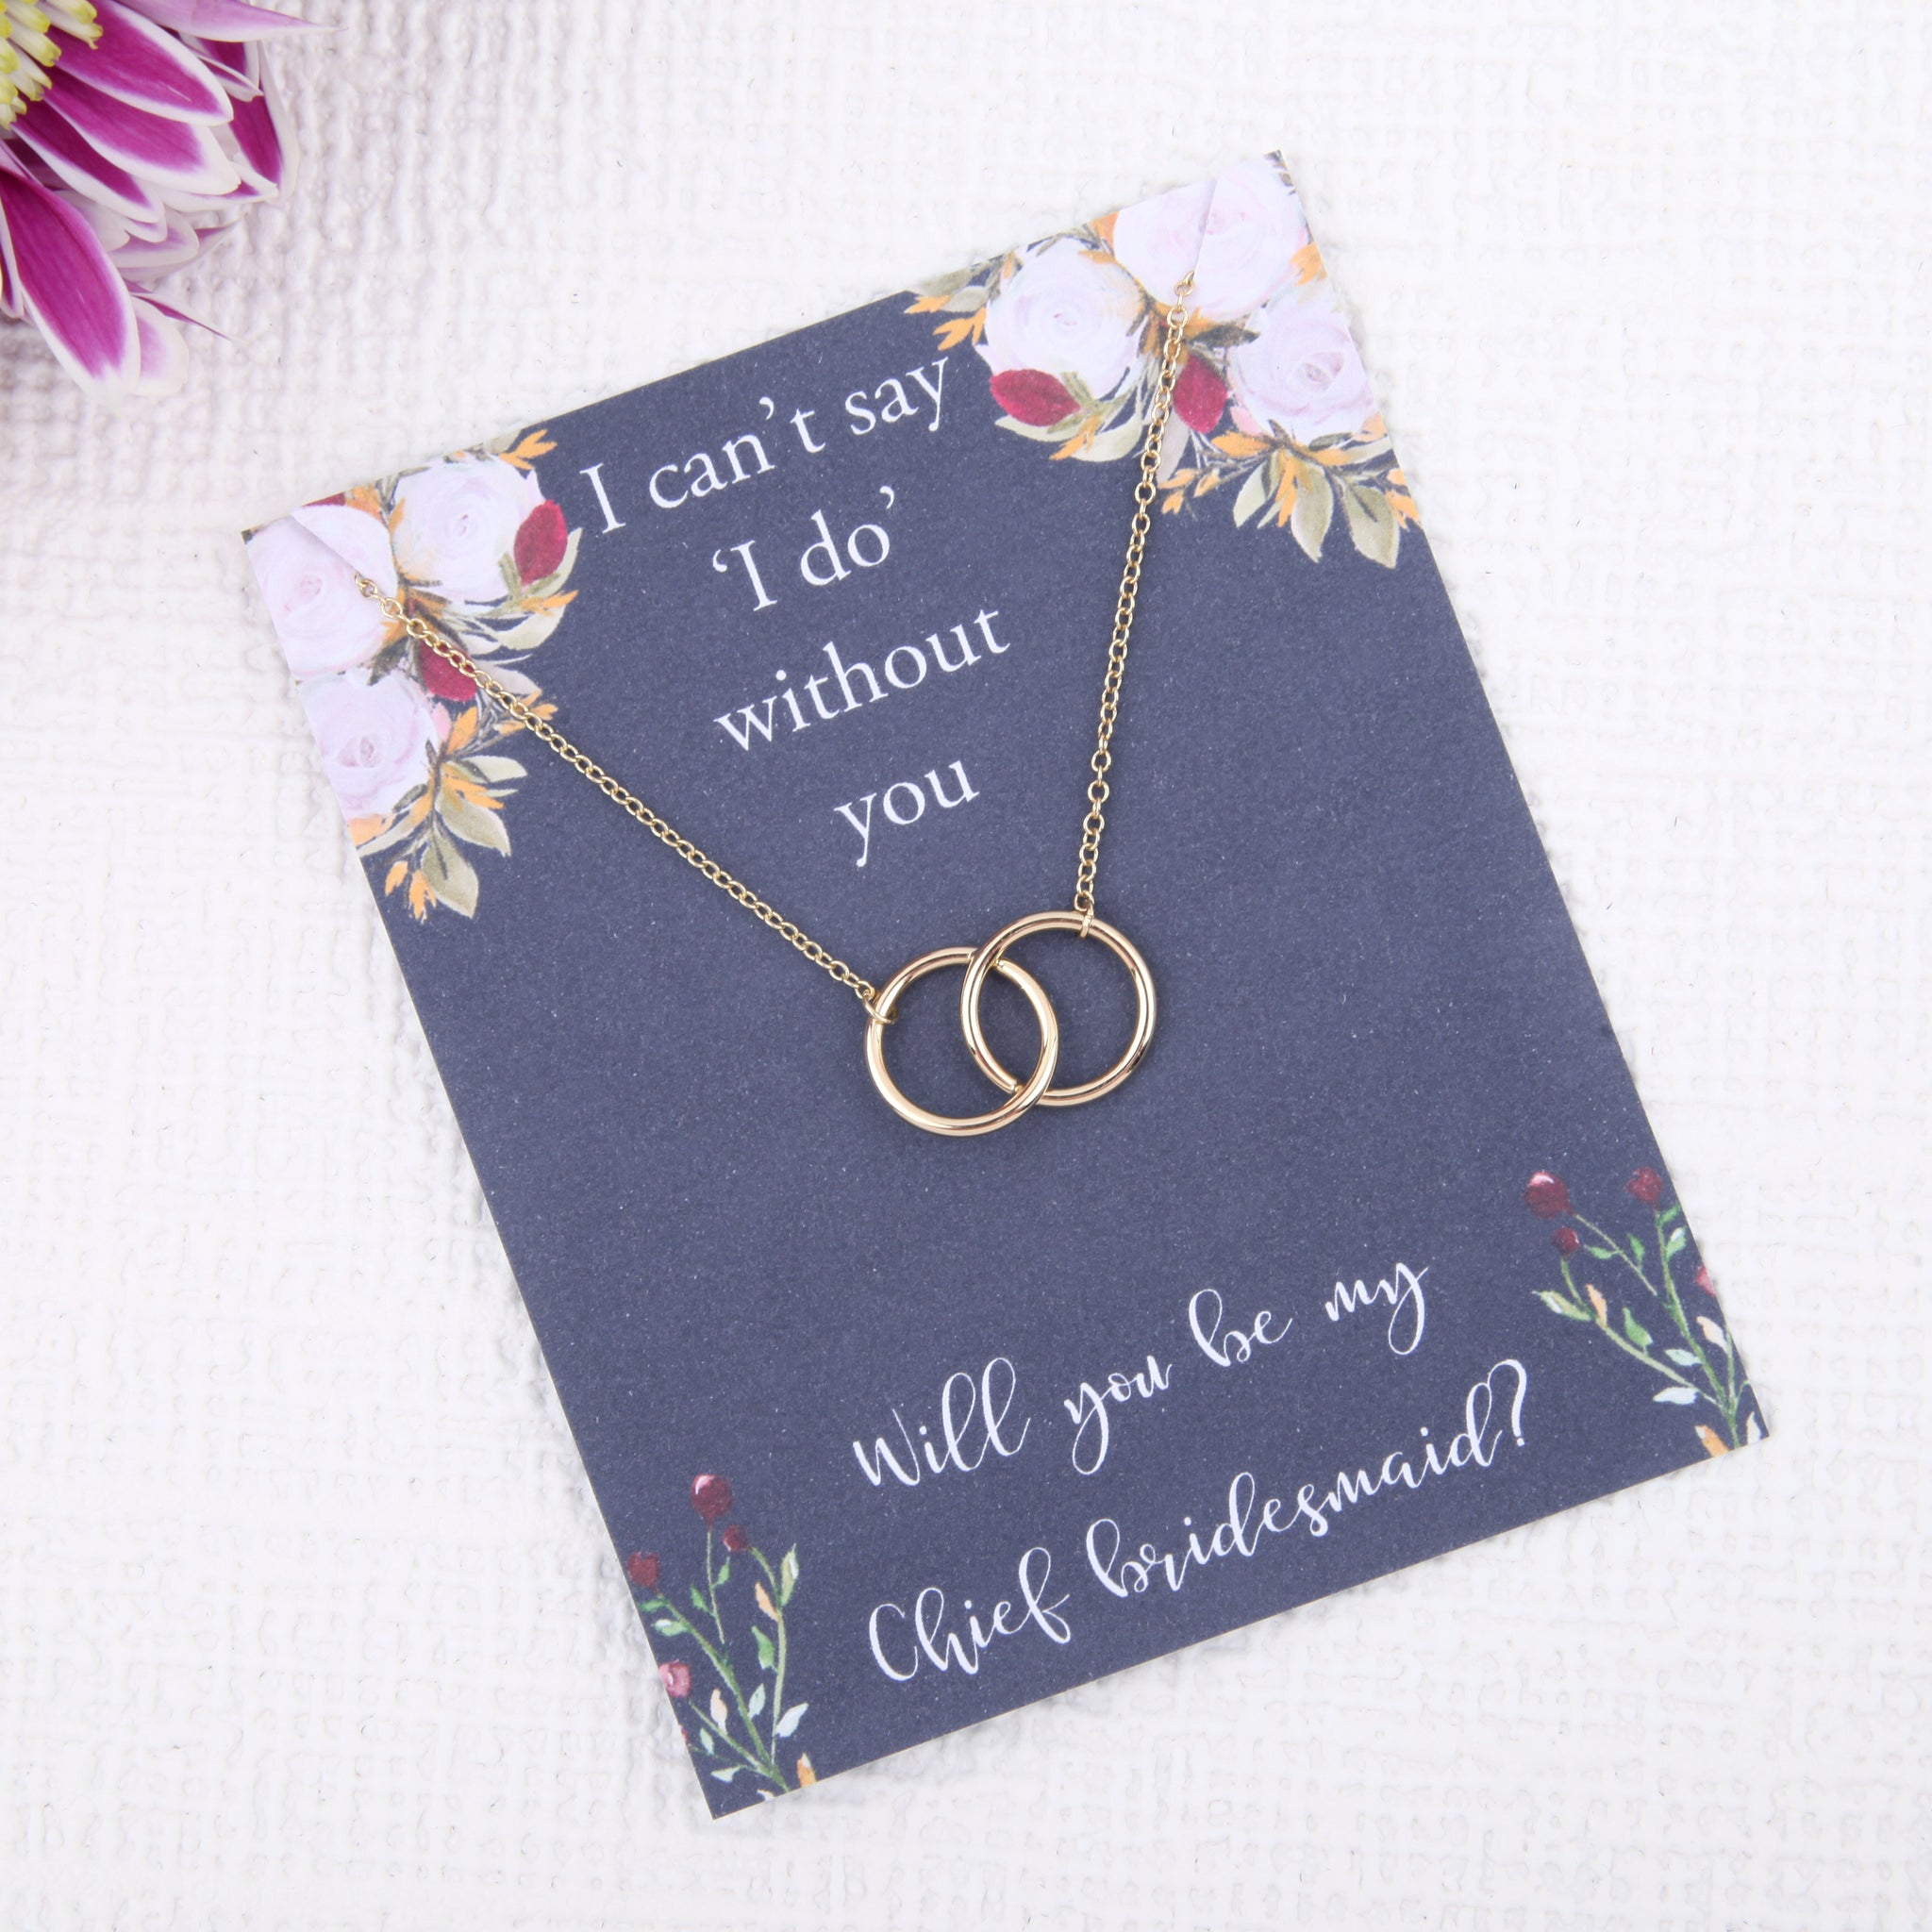 Chief Bridesmaid proposal gifts - will you be my Chief Bridesmaid bridal party circles message card necklace - Statement Made Jewellery